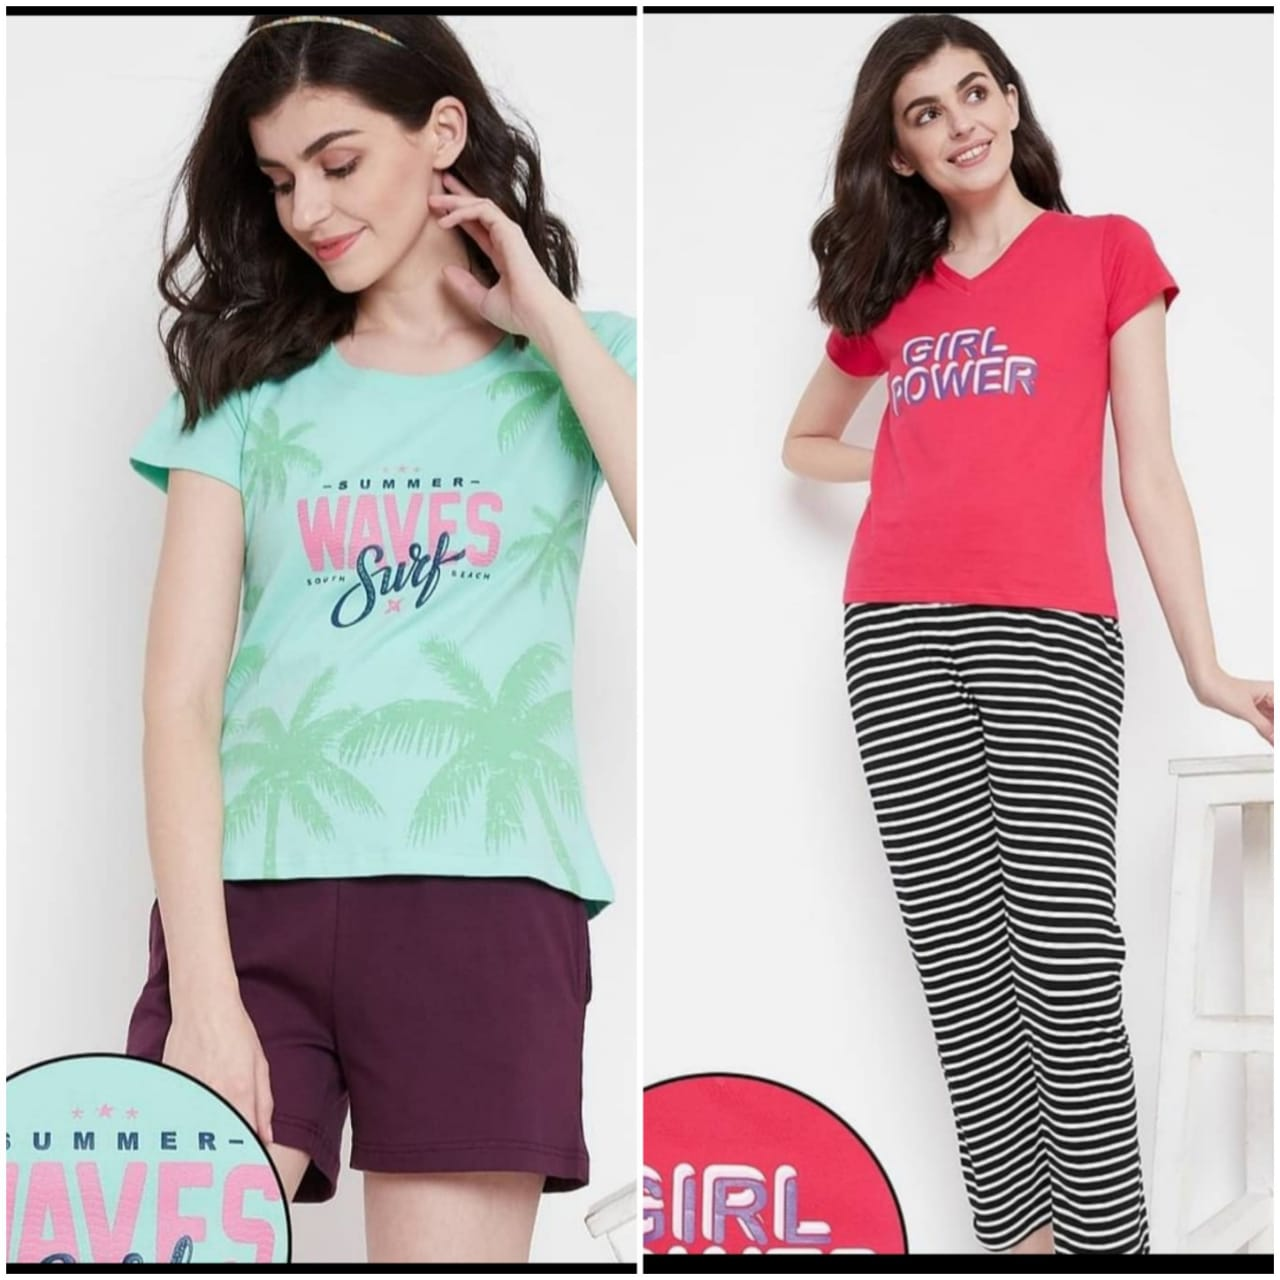 HSF Night Wear for 399/- - hsf28